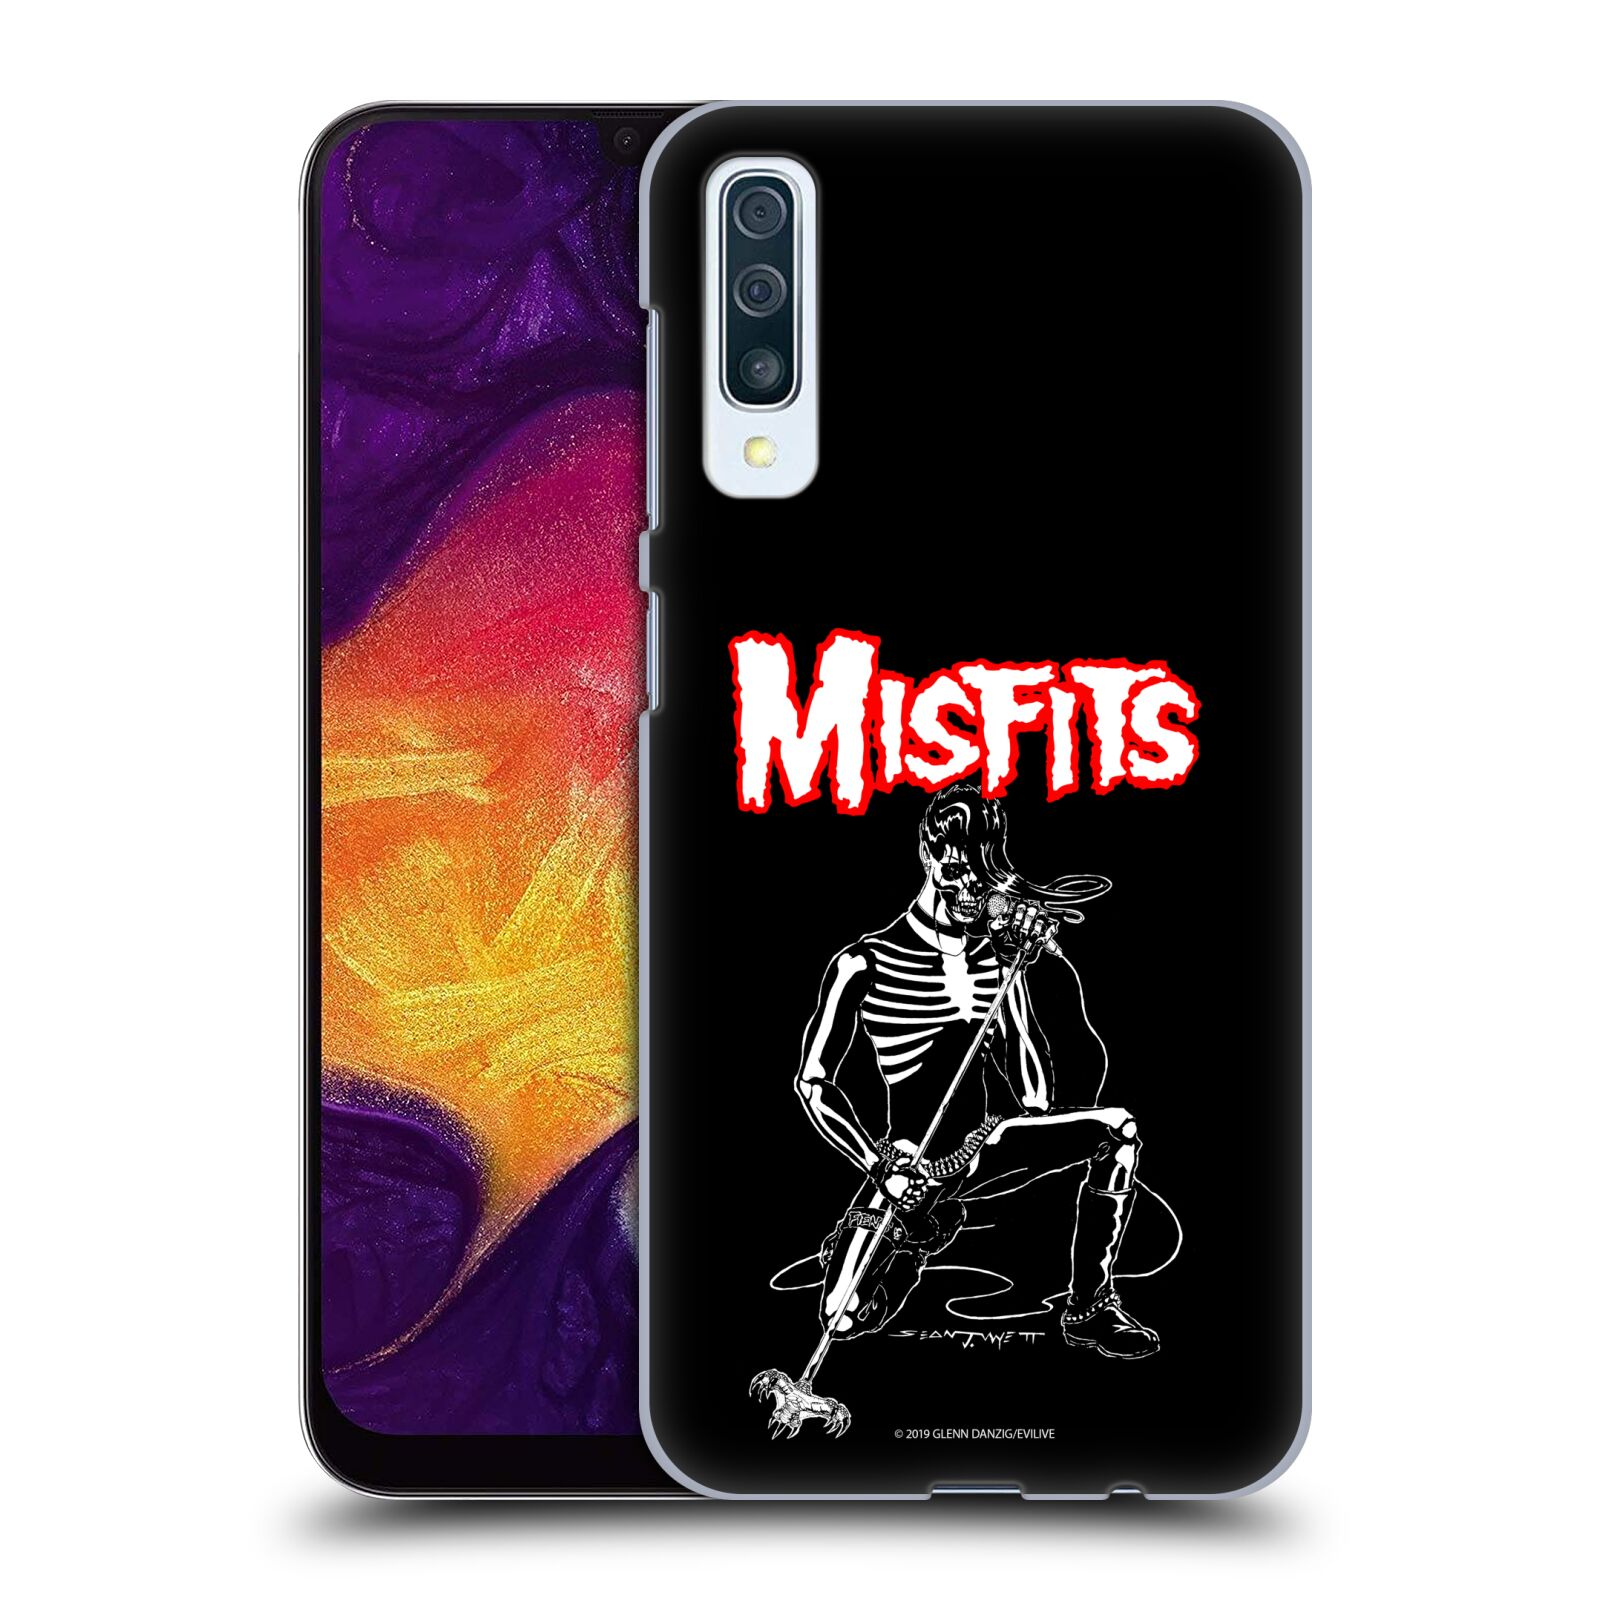 Official Misfits Band Art Legacy Of Brutality Case for Samsung Galaxy A50s (2019)